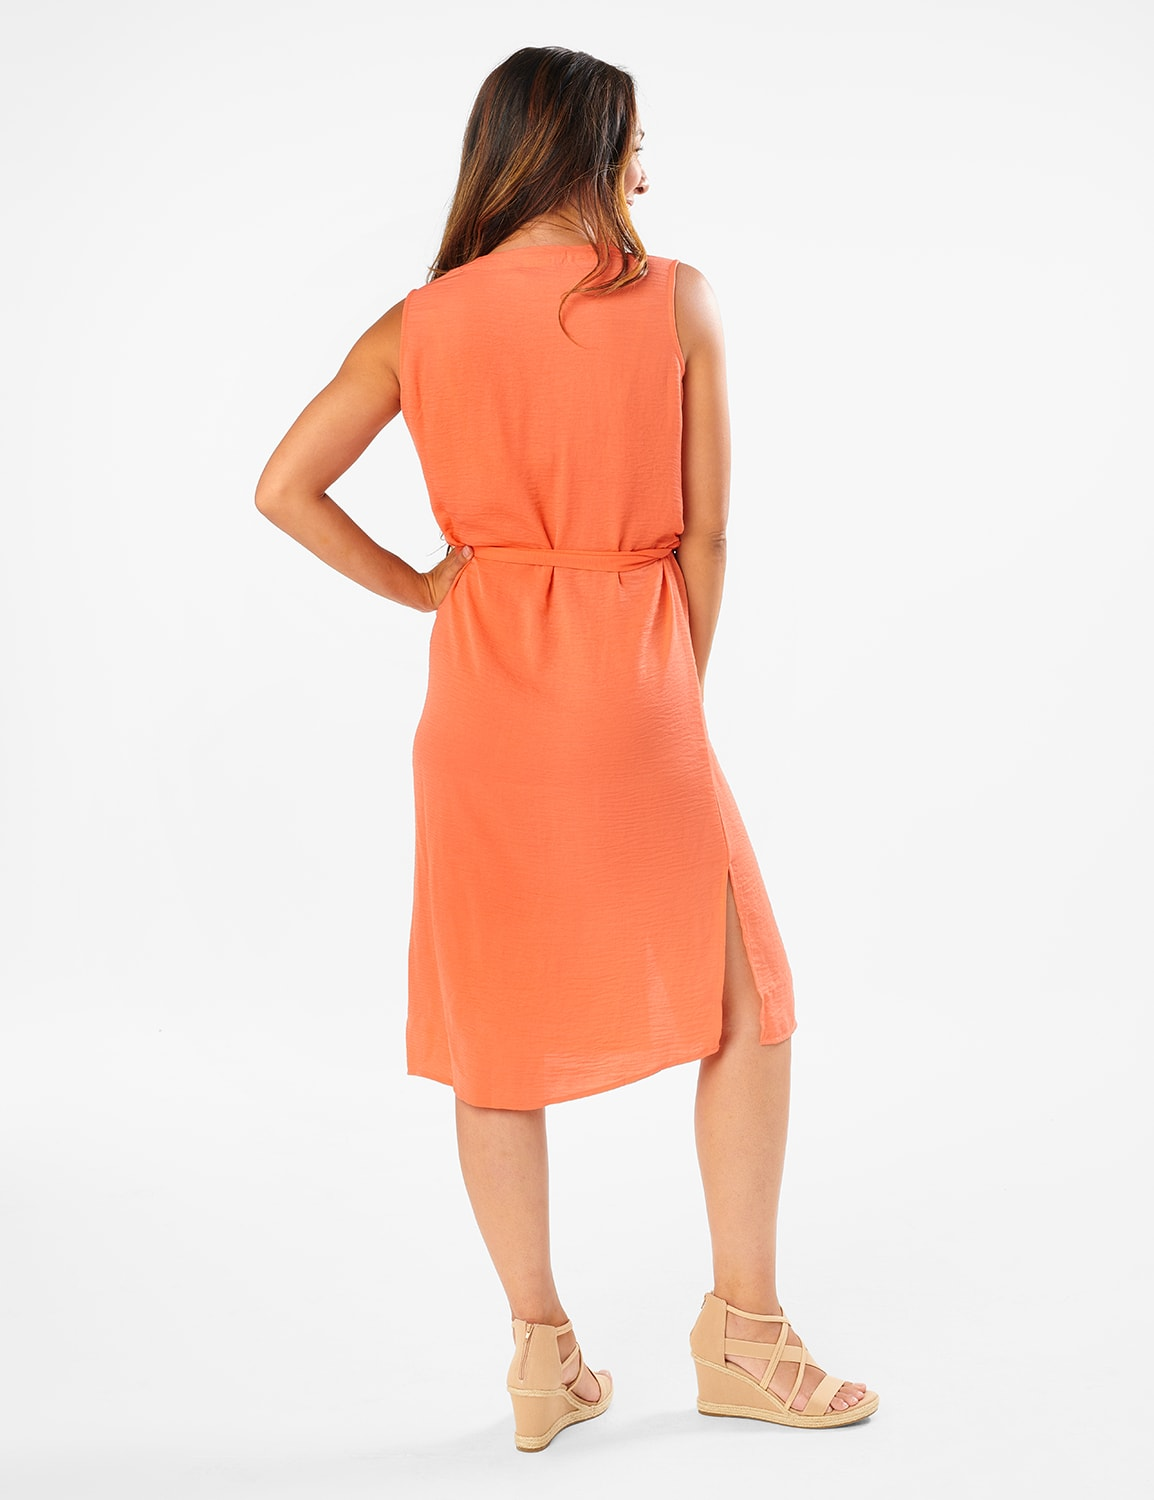 Button Front  Dress - Ember Glow - Back